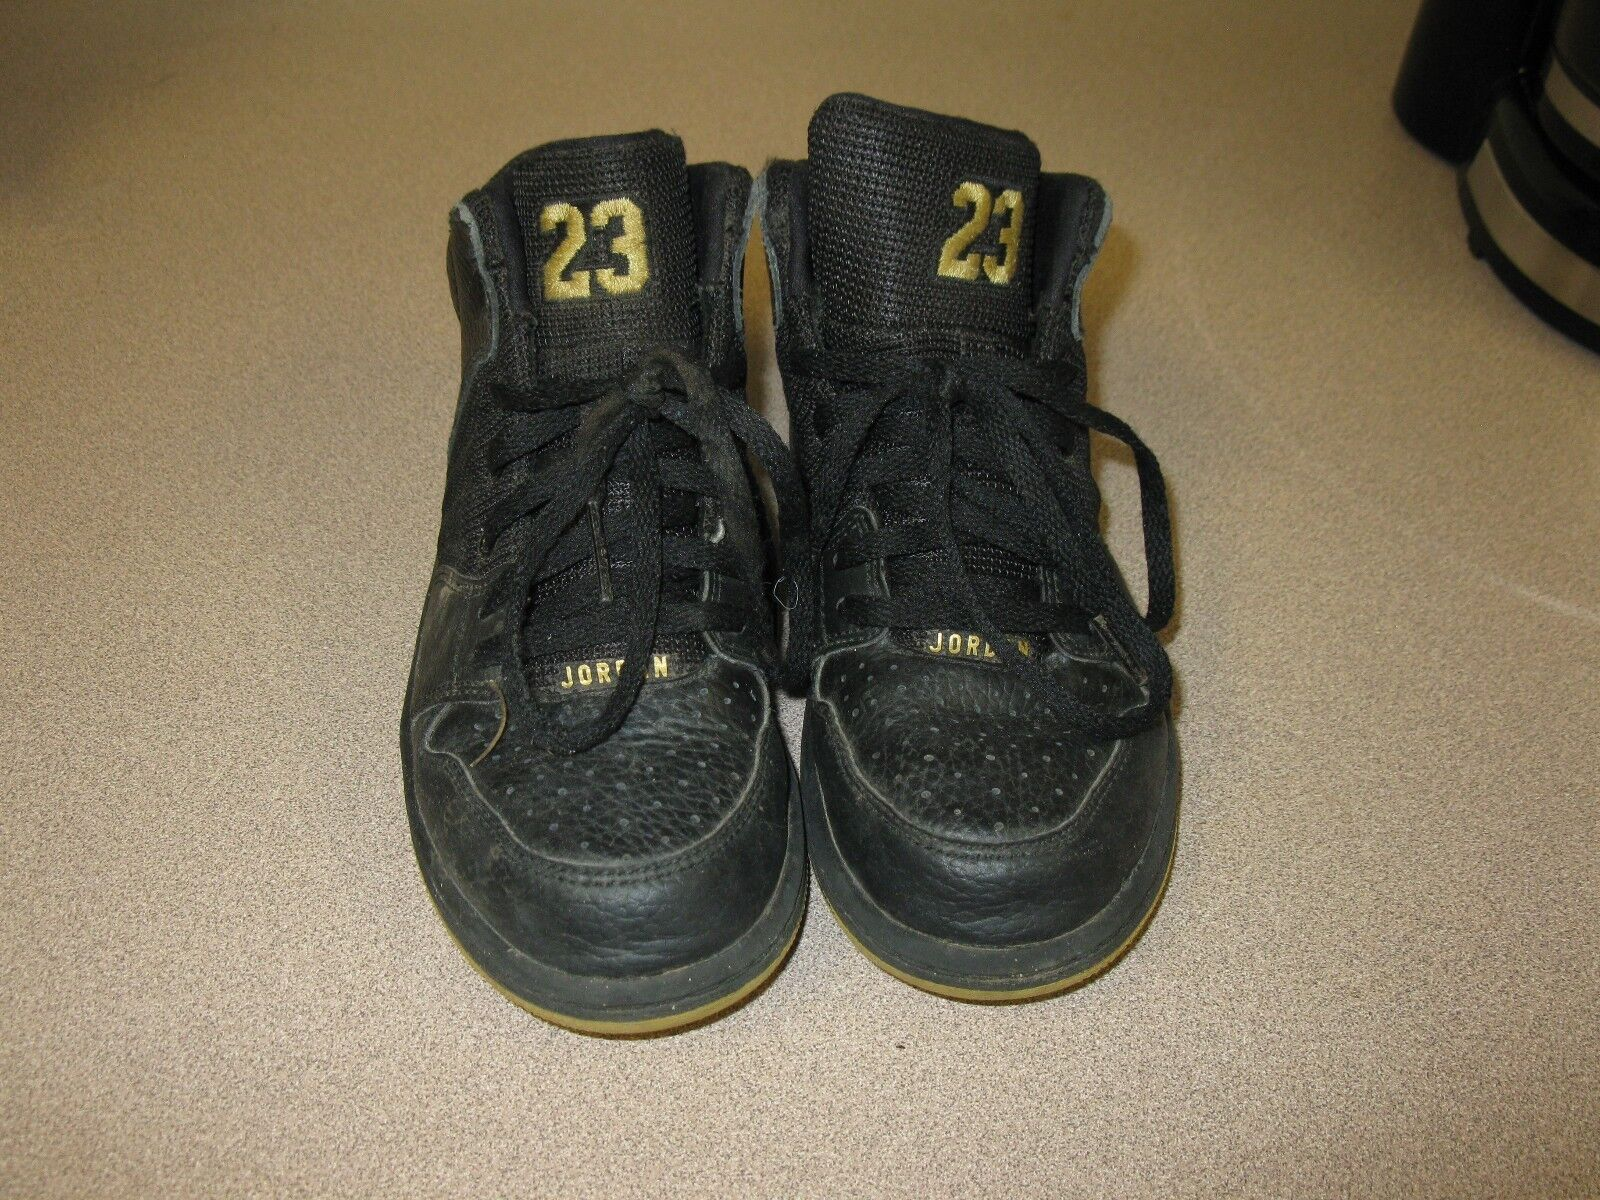 Man's/Woman's Nike Jordan 23 1Y 828243-070 shoes. Modern and and elegant fashion Various types and Modern styles cheaper f599c0